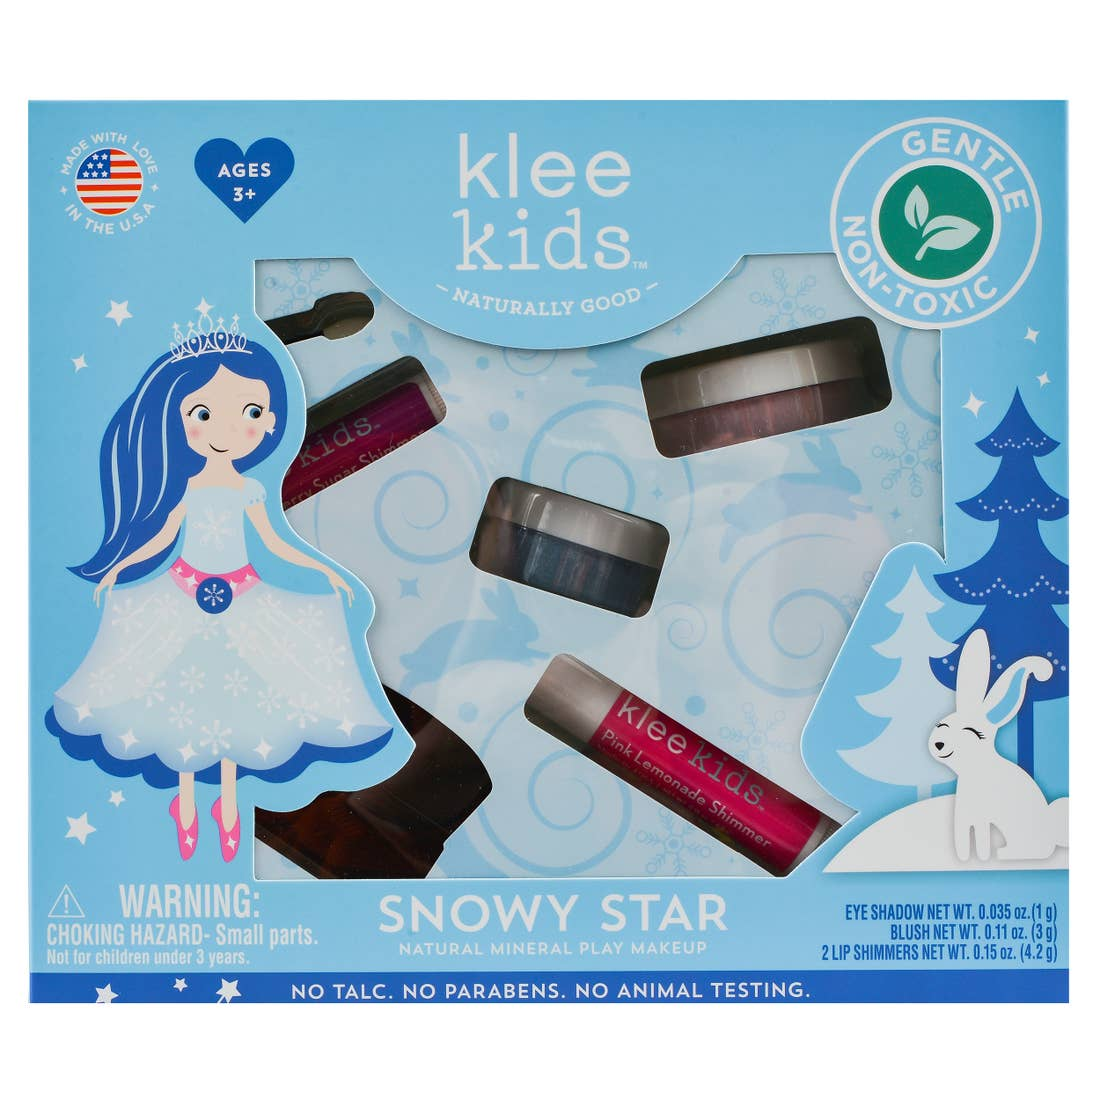 Snowy Star Fairy - Klee Kids Natural Mineral Play Makeup Kit